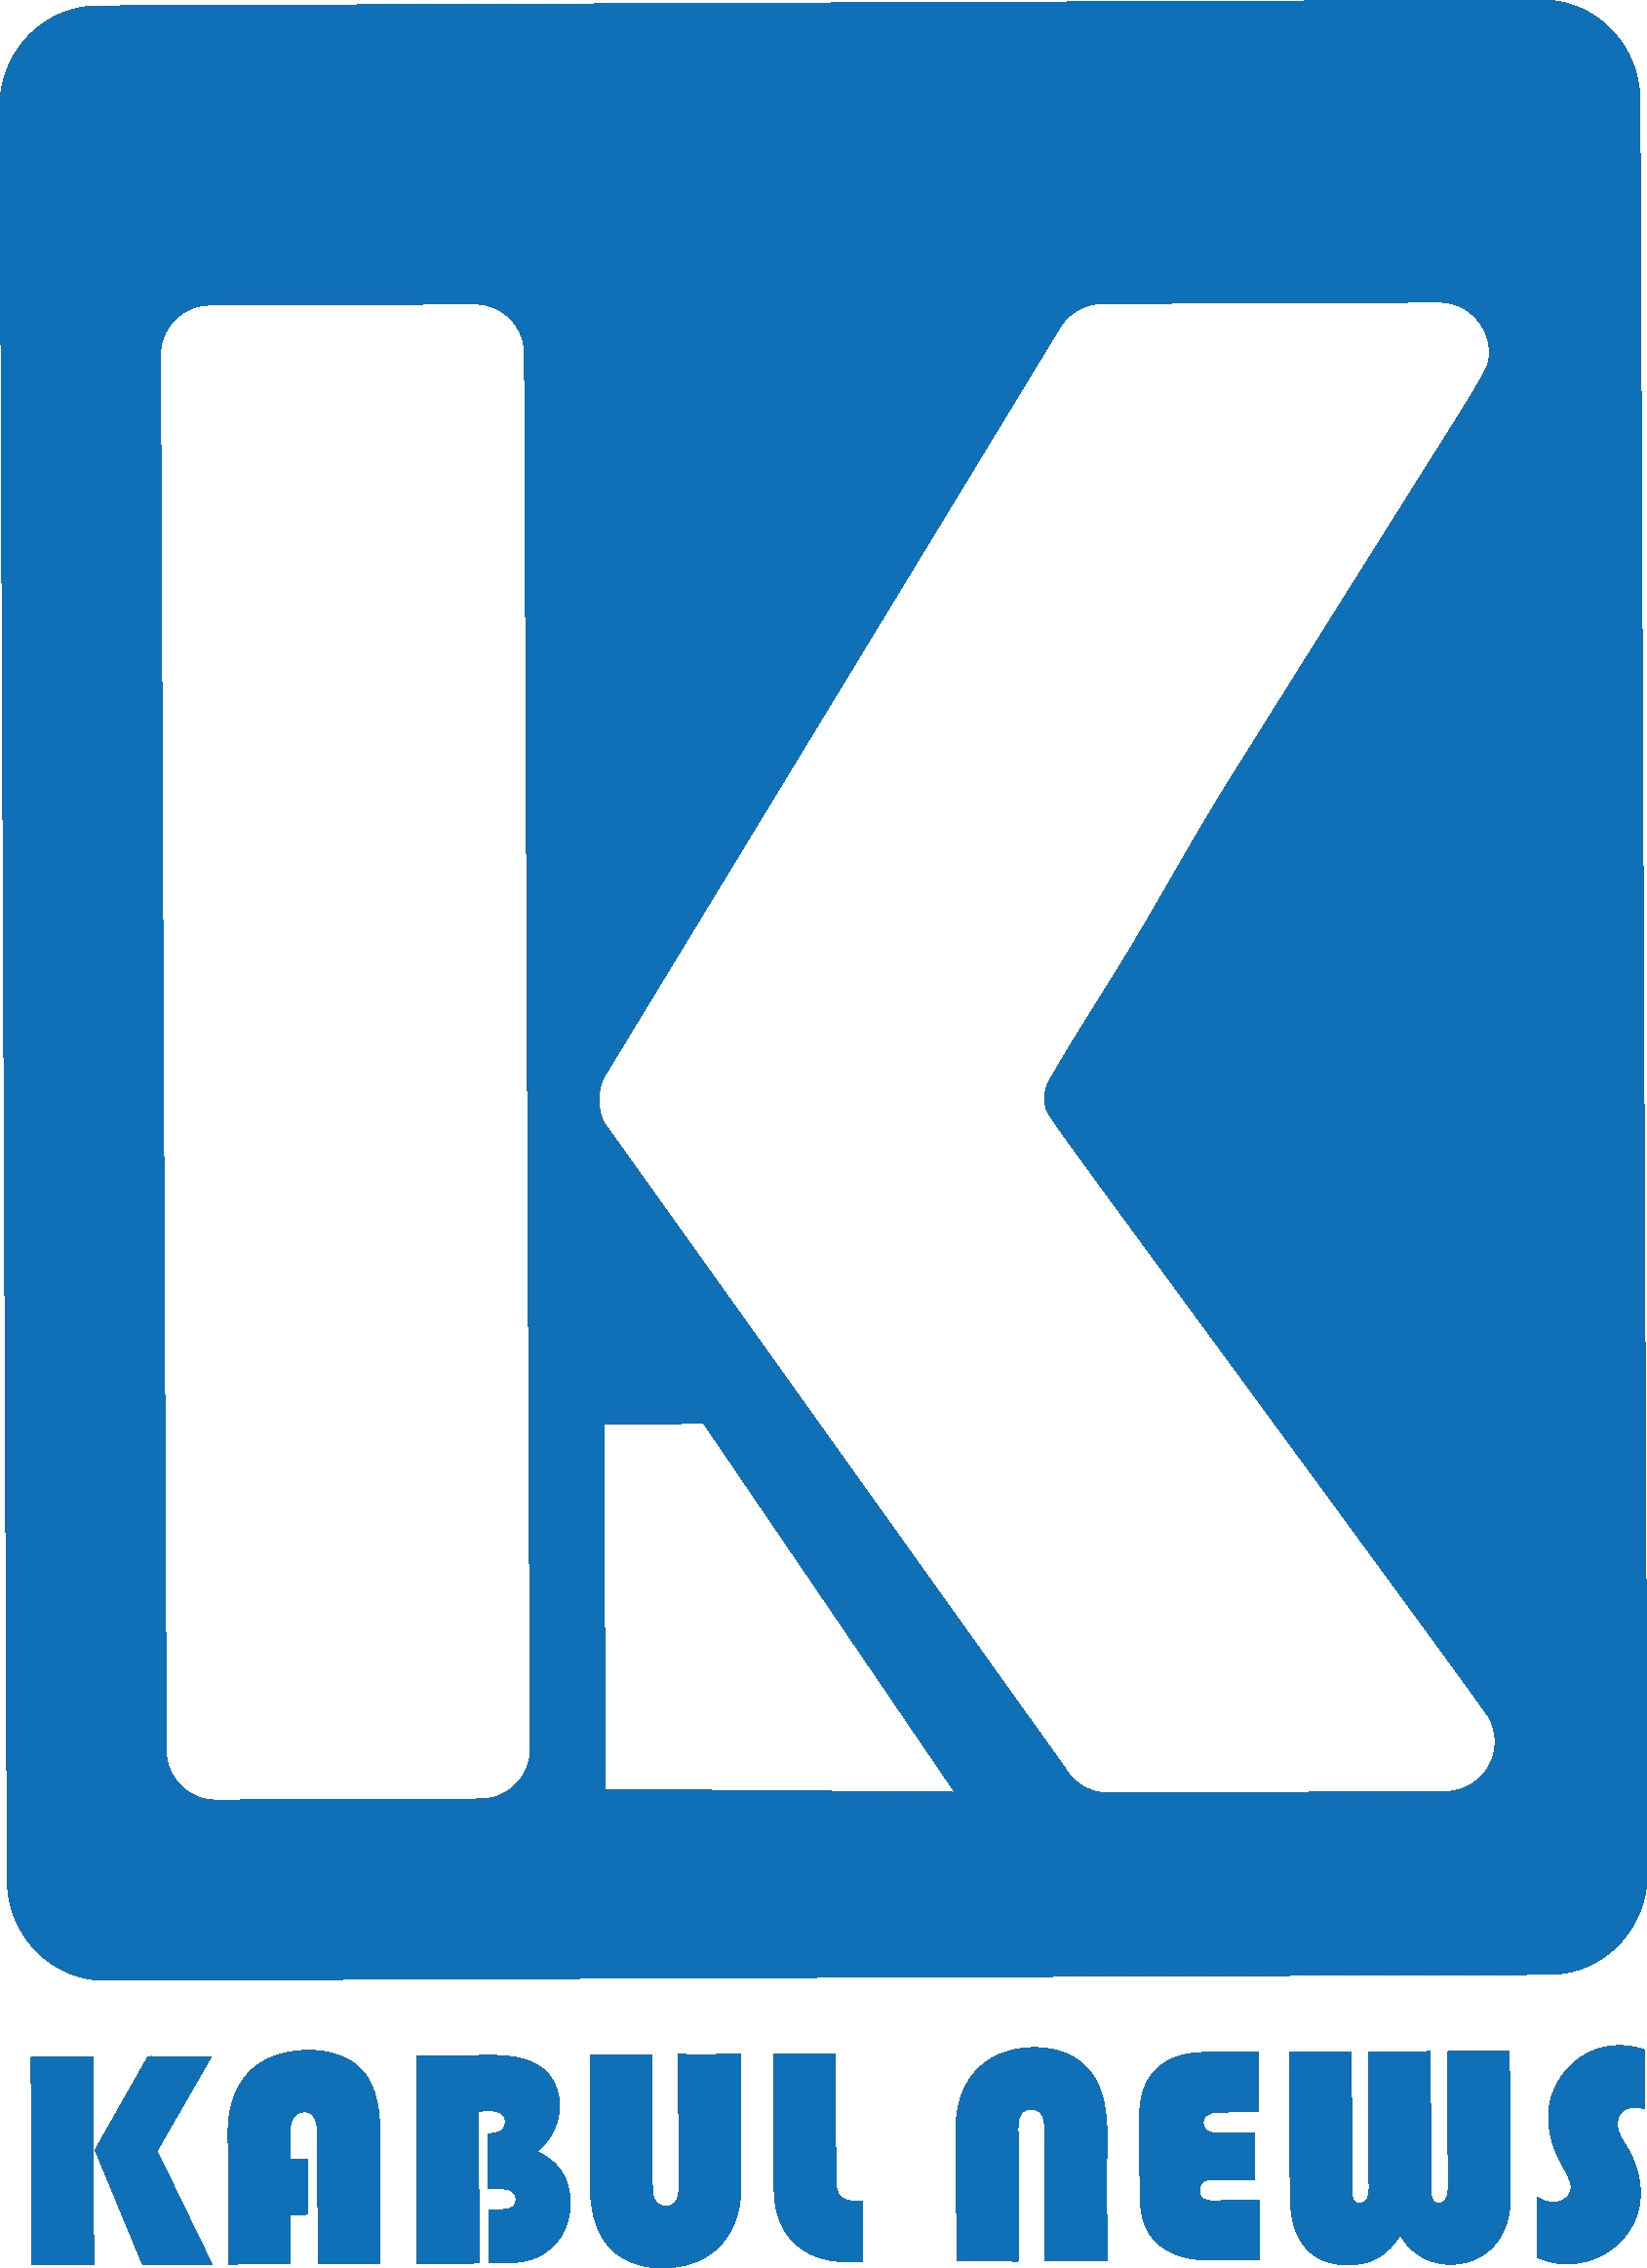 File:Kabul news logo.JPG